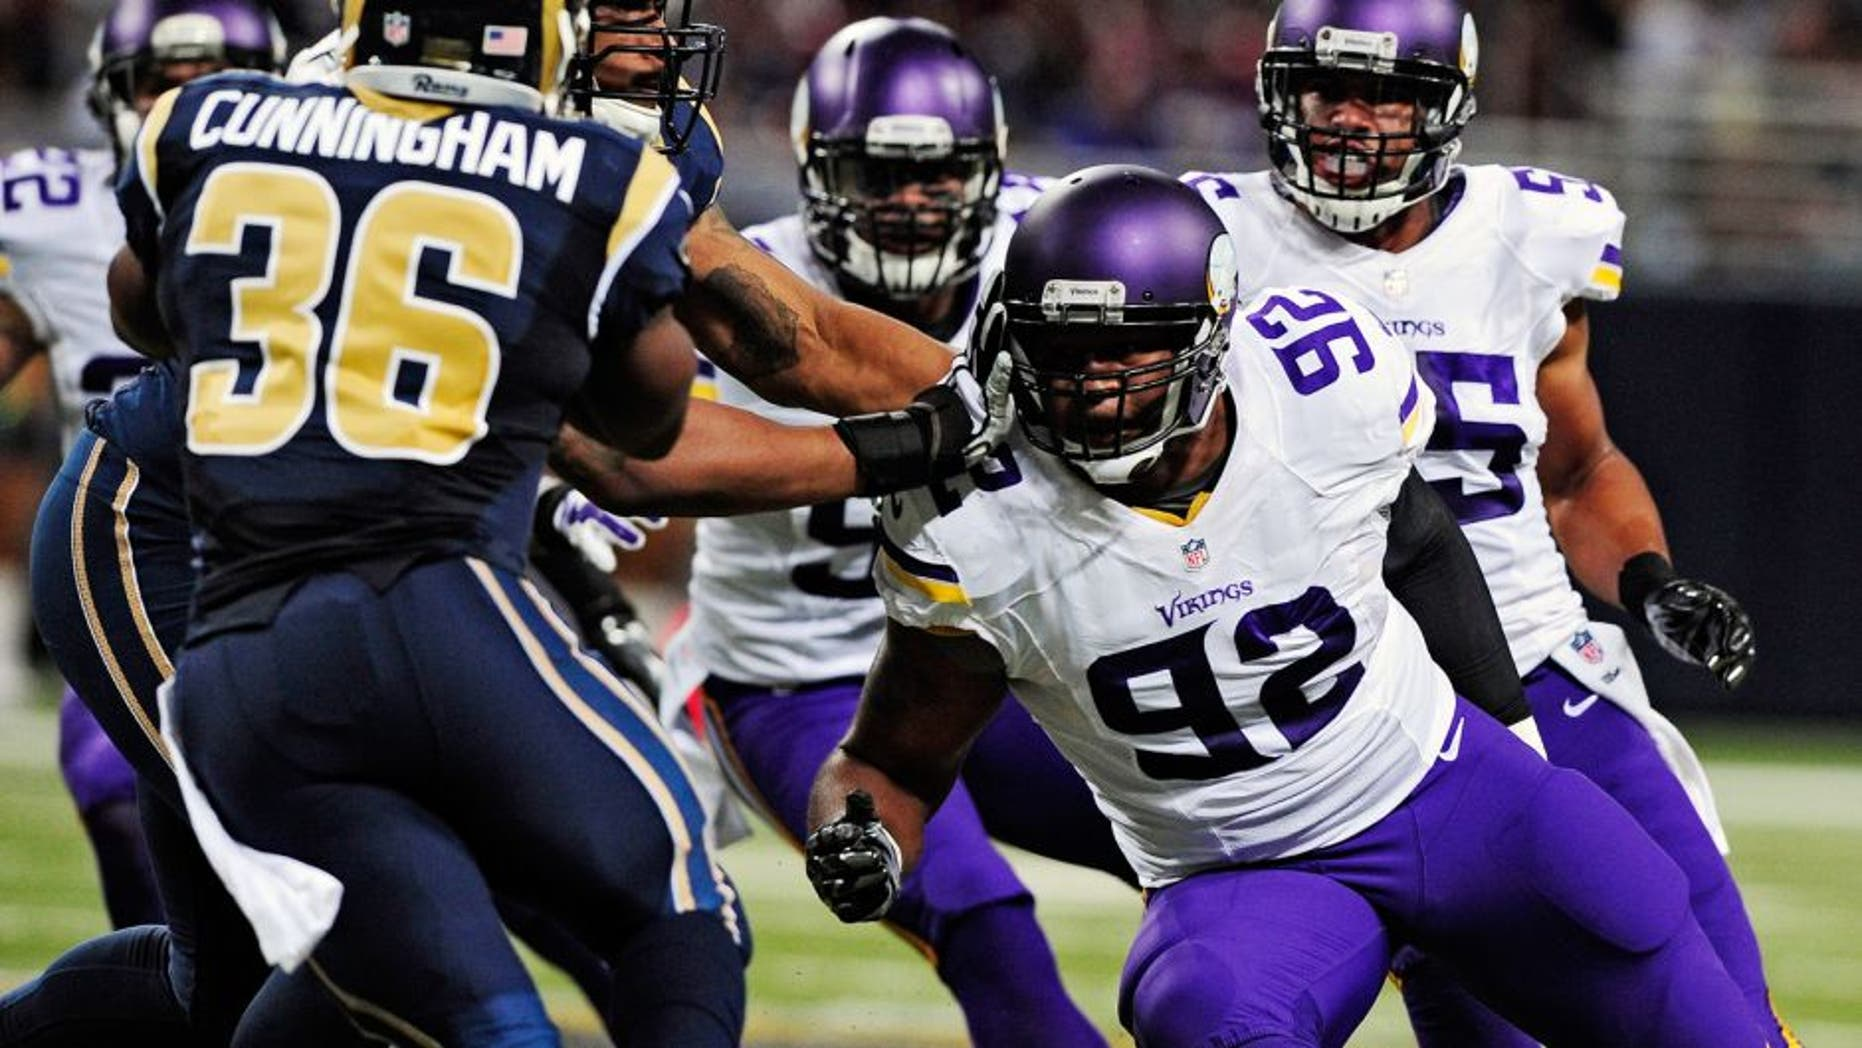 Sep 7, 2014; St. Louis, MO, USA; Minnesota Vikings defensive tackle Tom Johnson (92) defends against St. Louis Rams running back Benny Cunningham (36) during the second half at the Edward Jones Dome. The Vikings defeated the Rams 34-6. Mandatory Credit: Jeff Curry-USA TODAY Sports